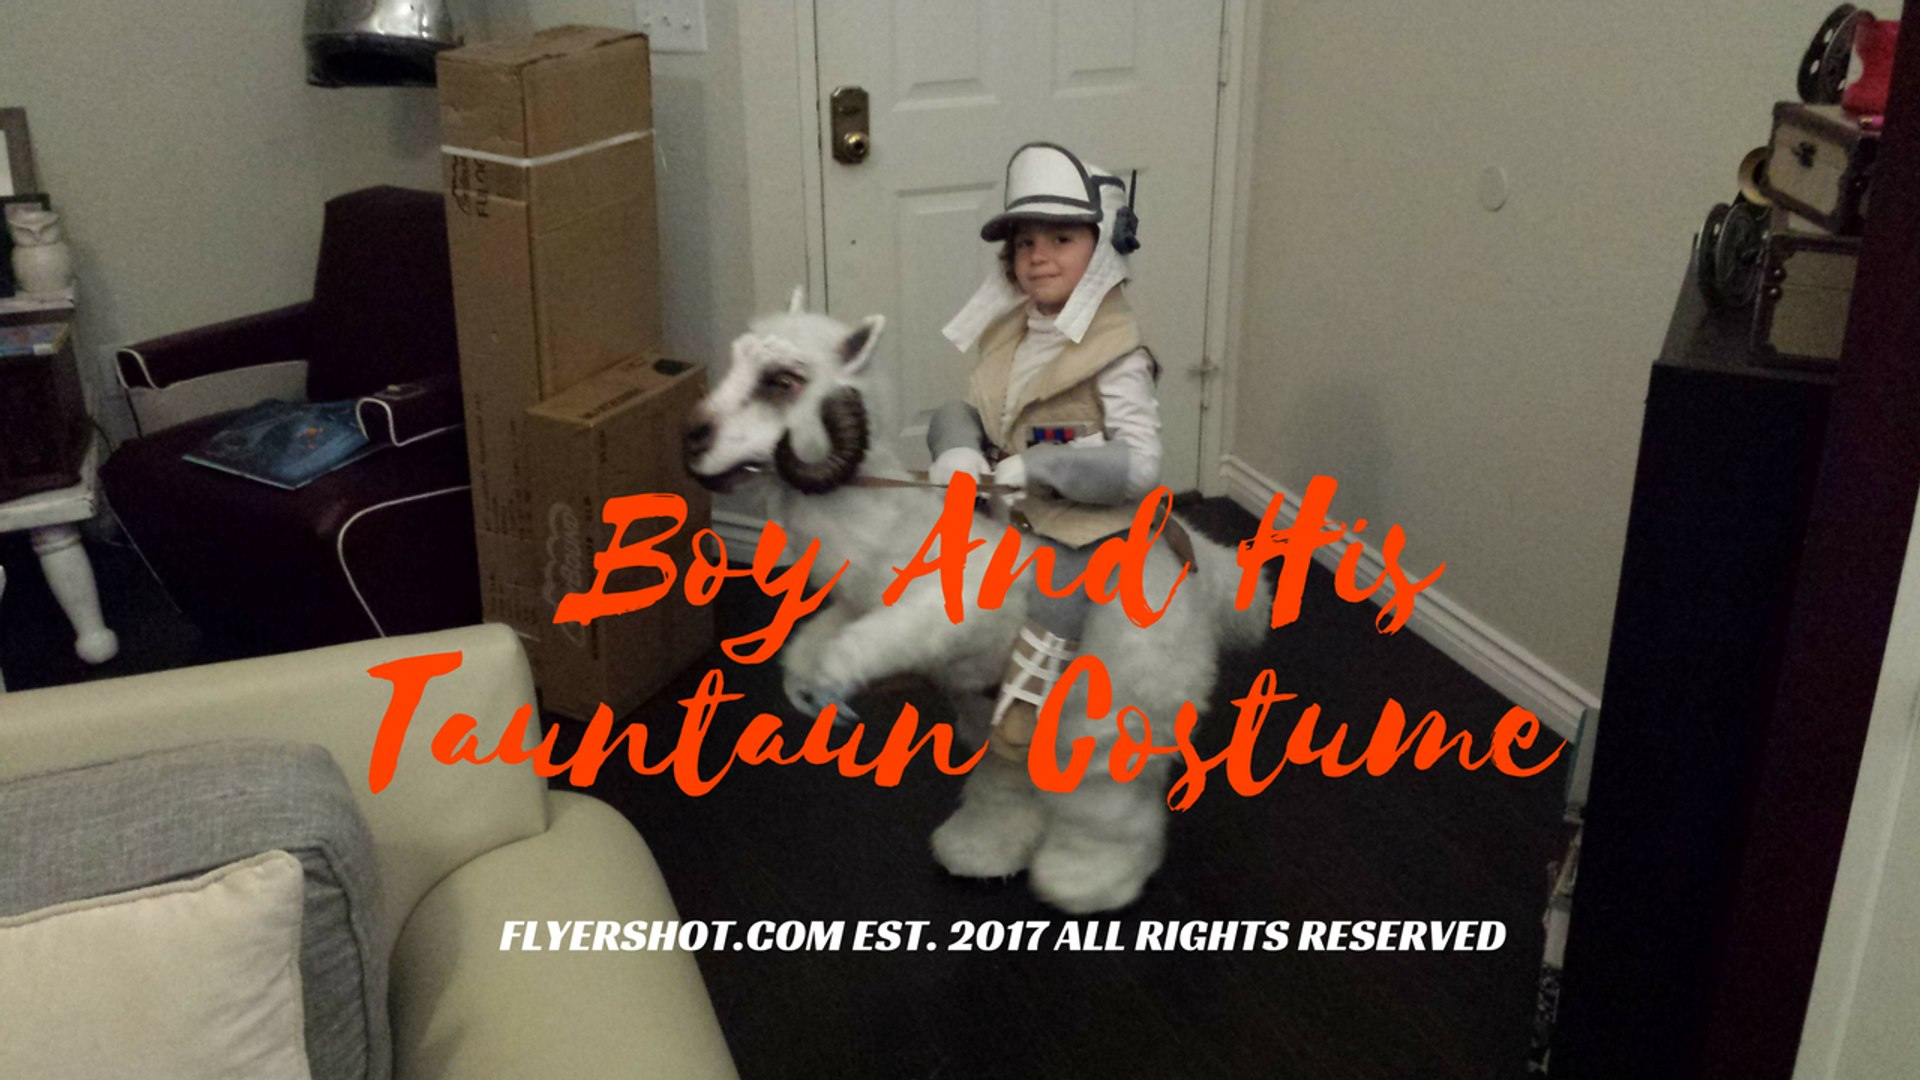 FLYERSHOT.COM -  Boy And His Tauntaun Costume. 2017